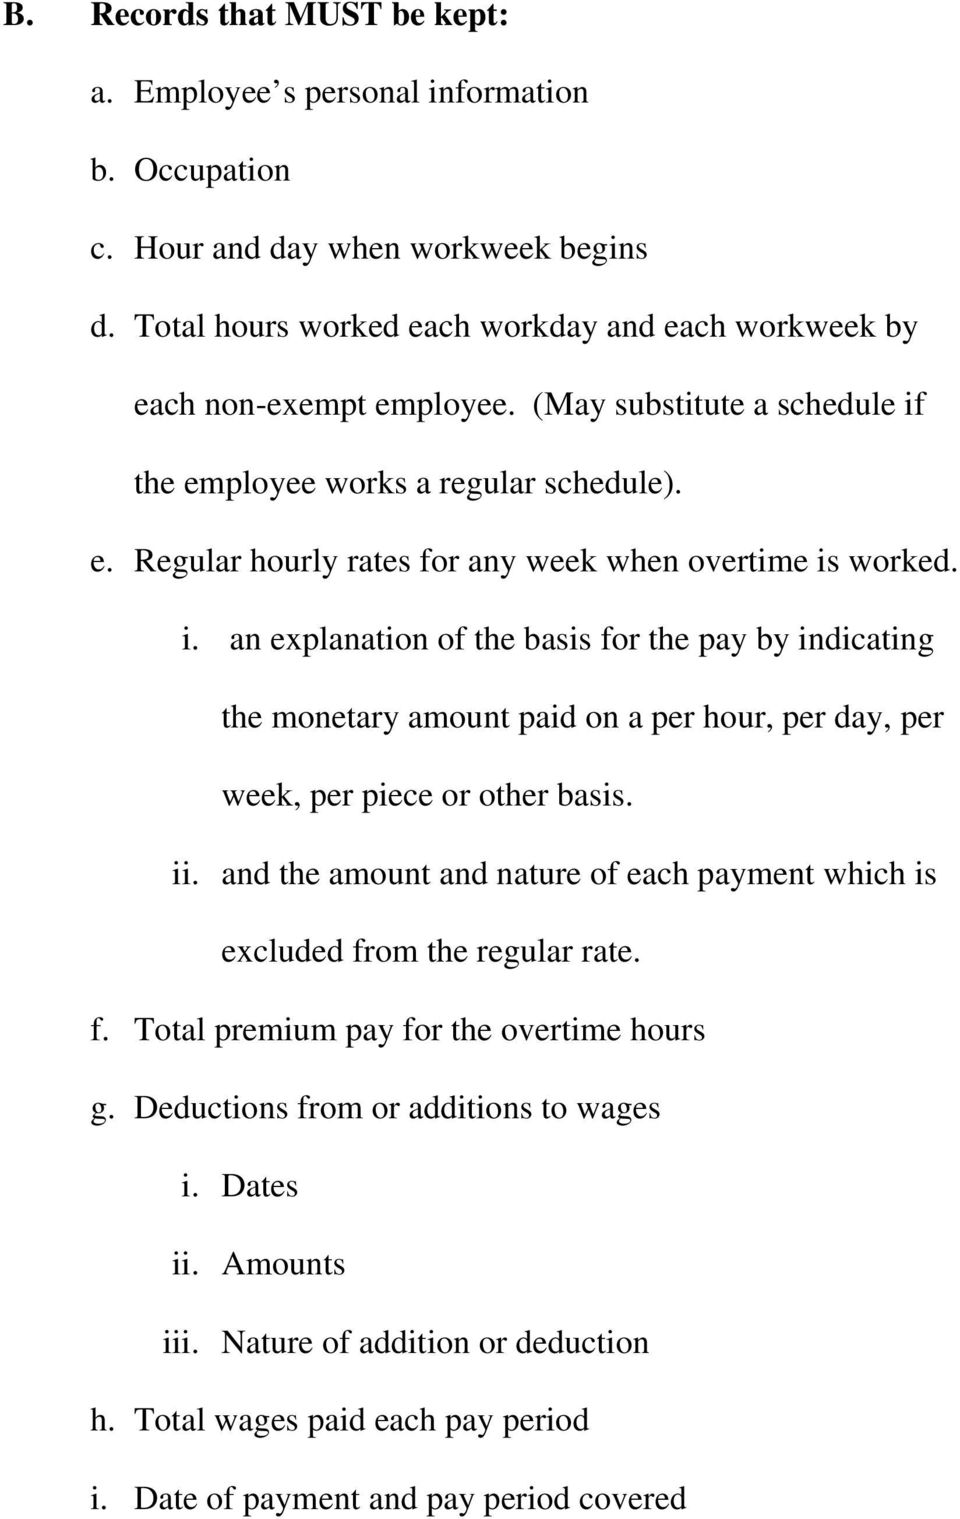 i. an explanation of the basis for the pay by indicating the monetary amount paid on a per hour, per day, per week, per piece or other basis. ii.